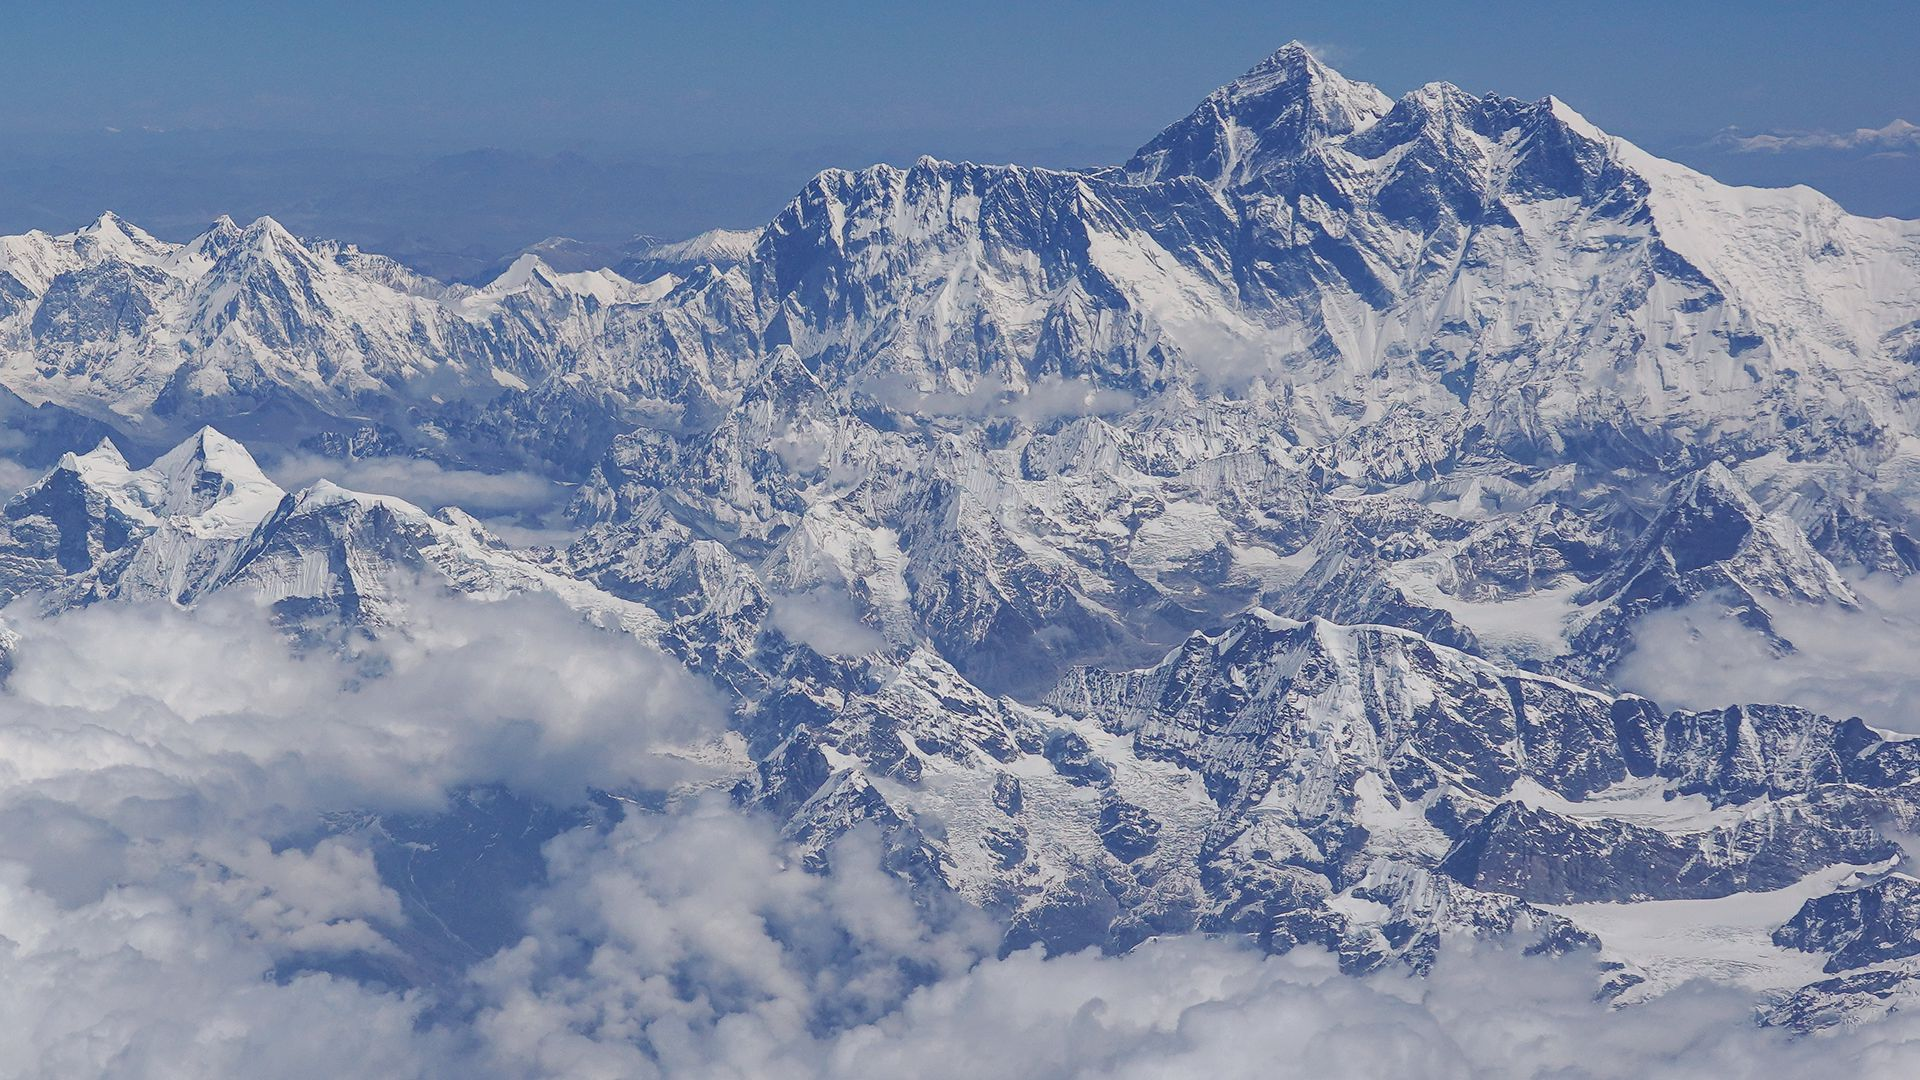 3 more people died climbing Mount Everest yesterday